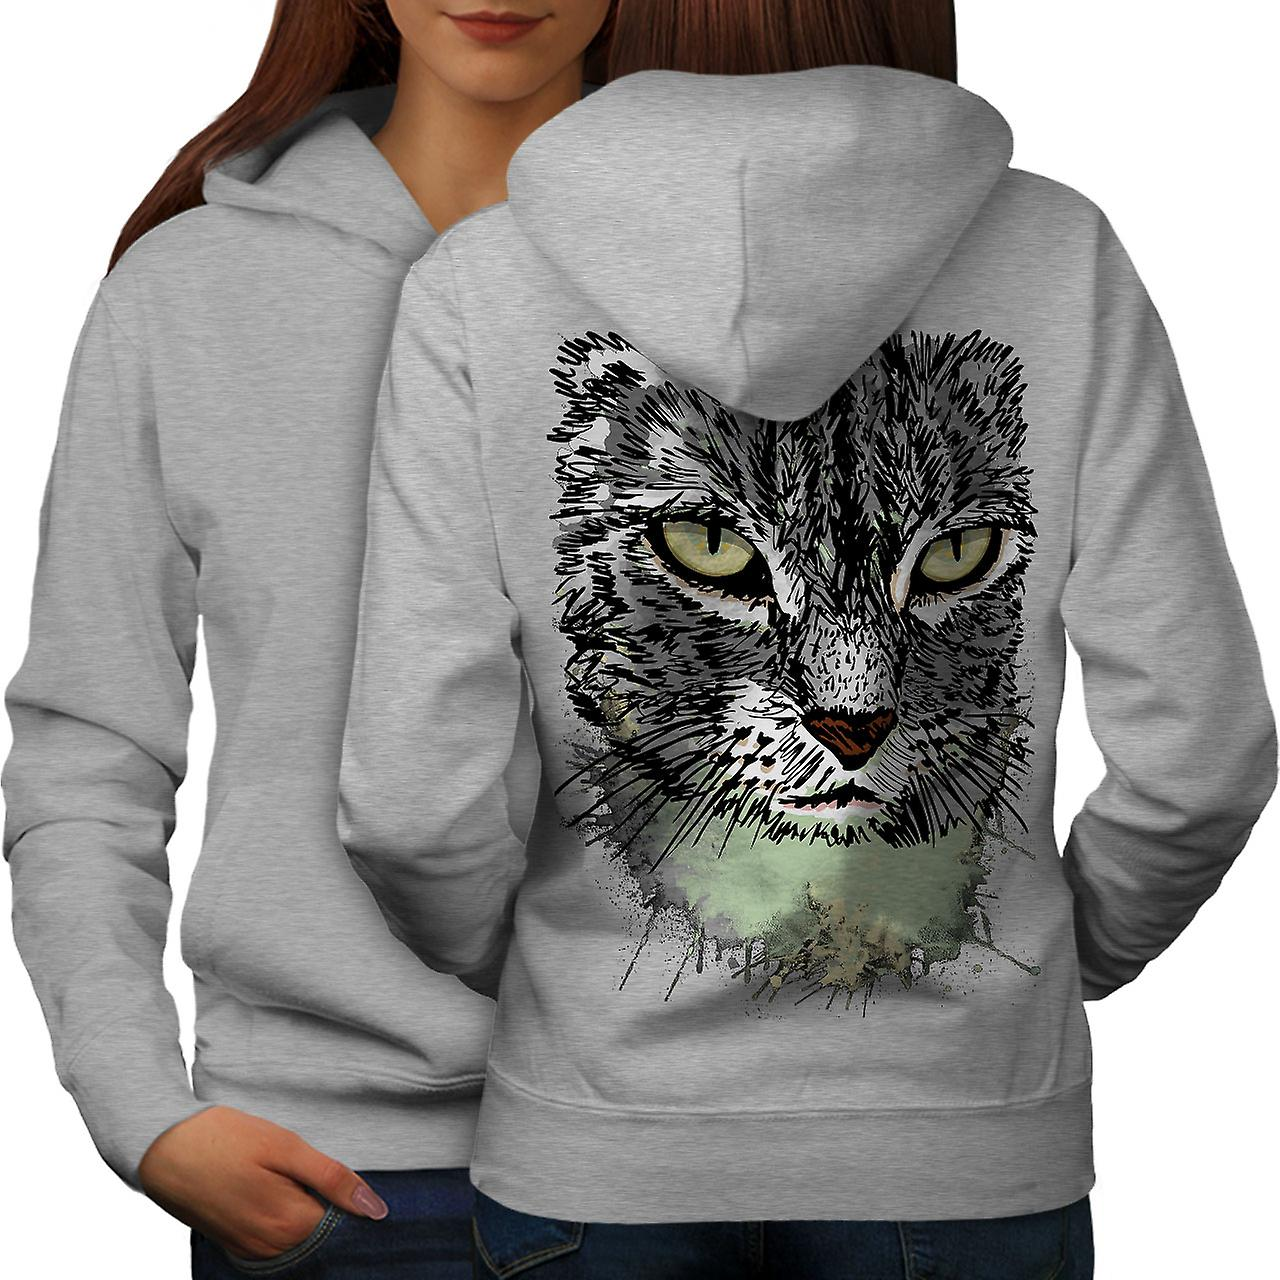 Peint Kitty Angry Cat femmes grisHoodie dos